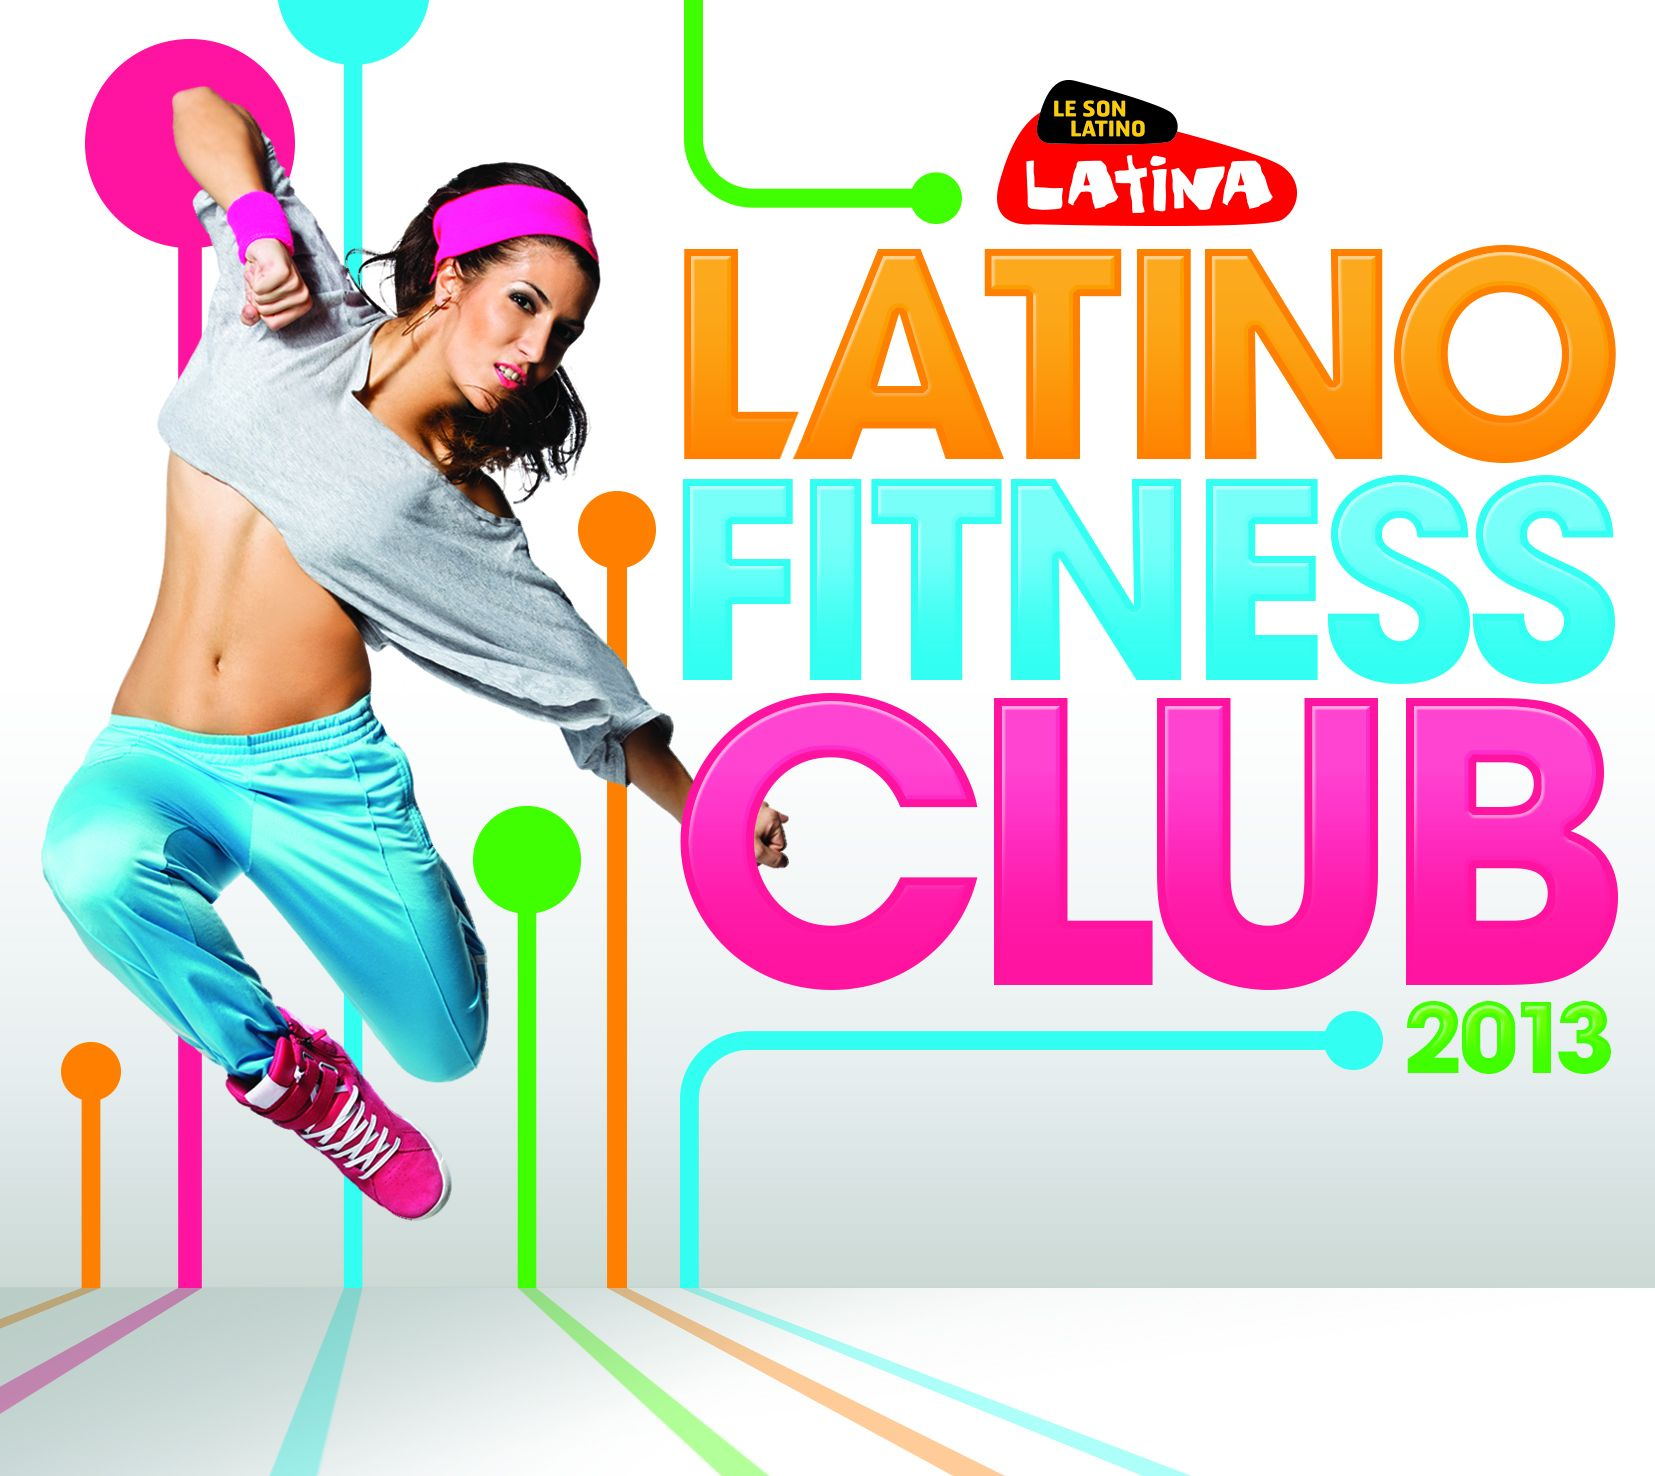 Latino Fitness Club 2013